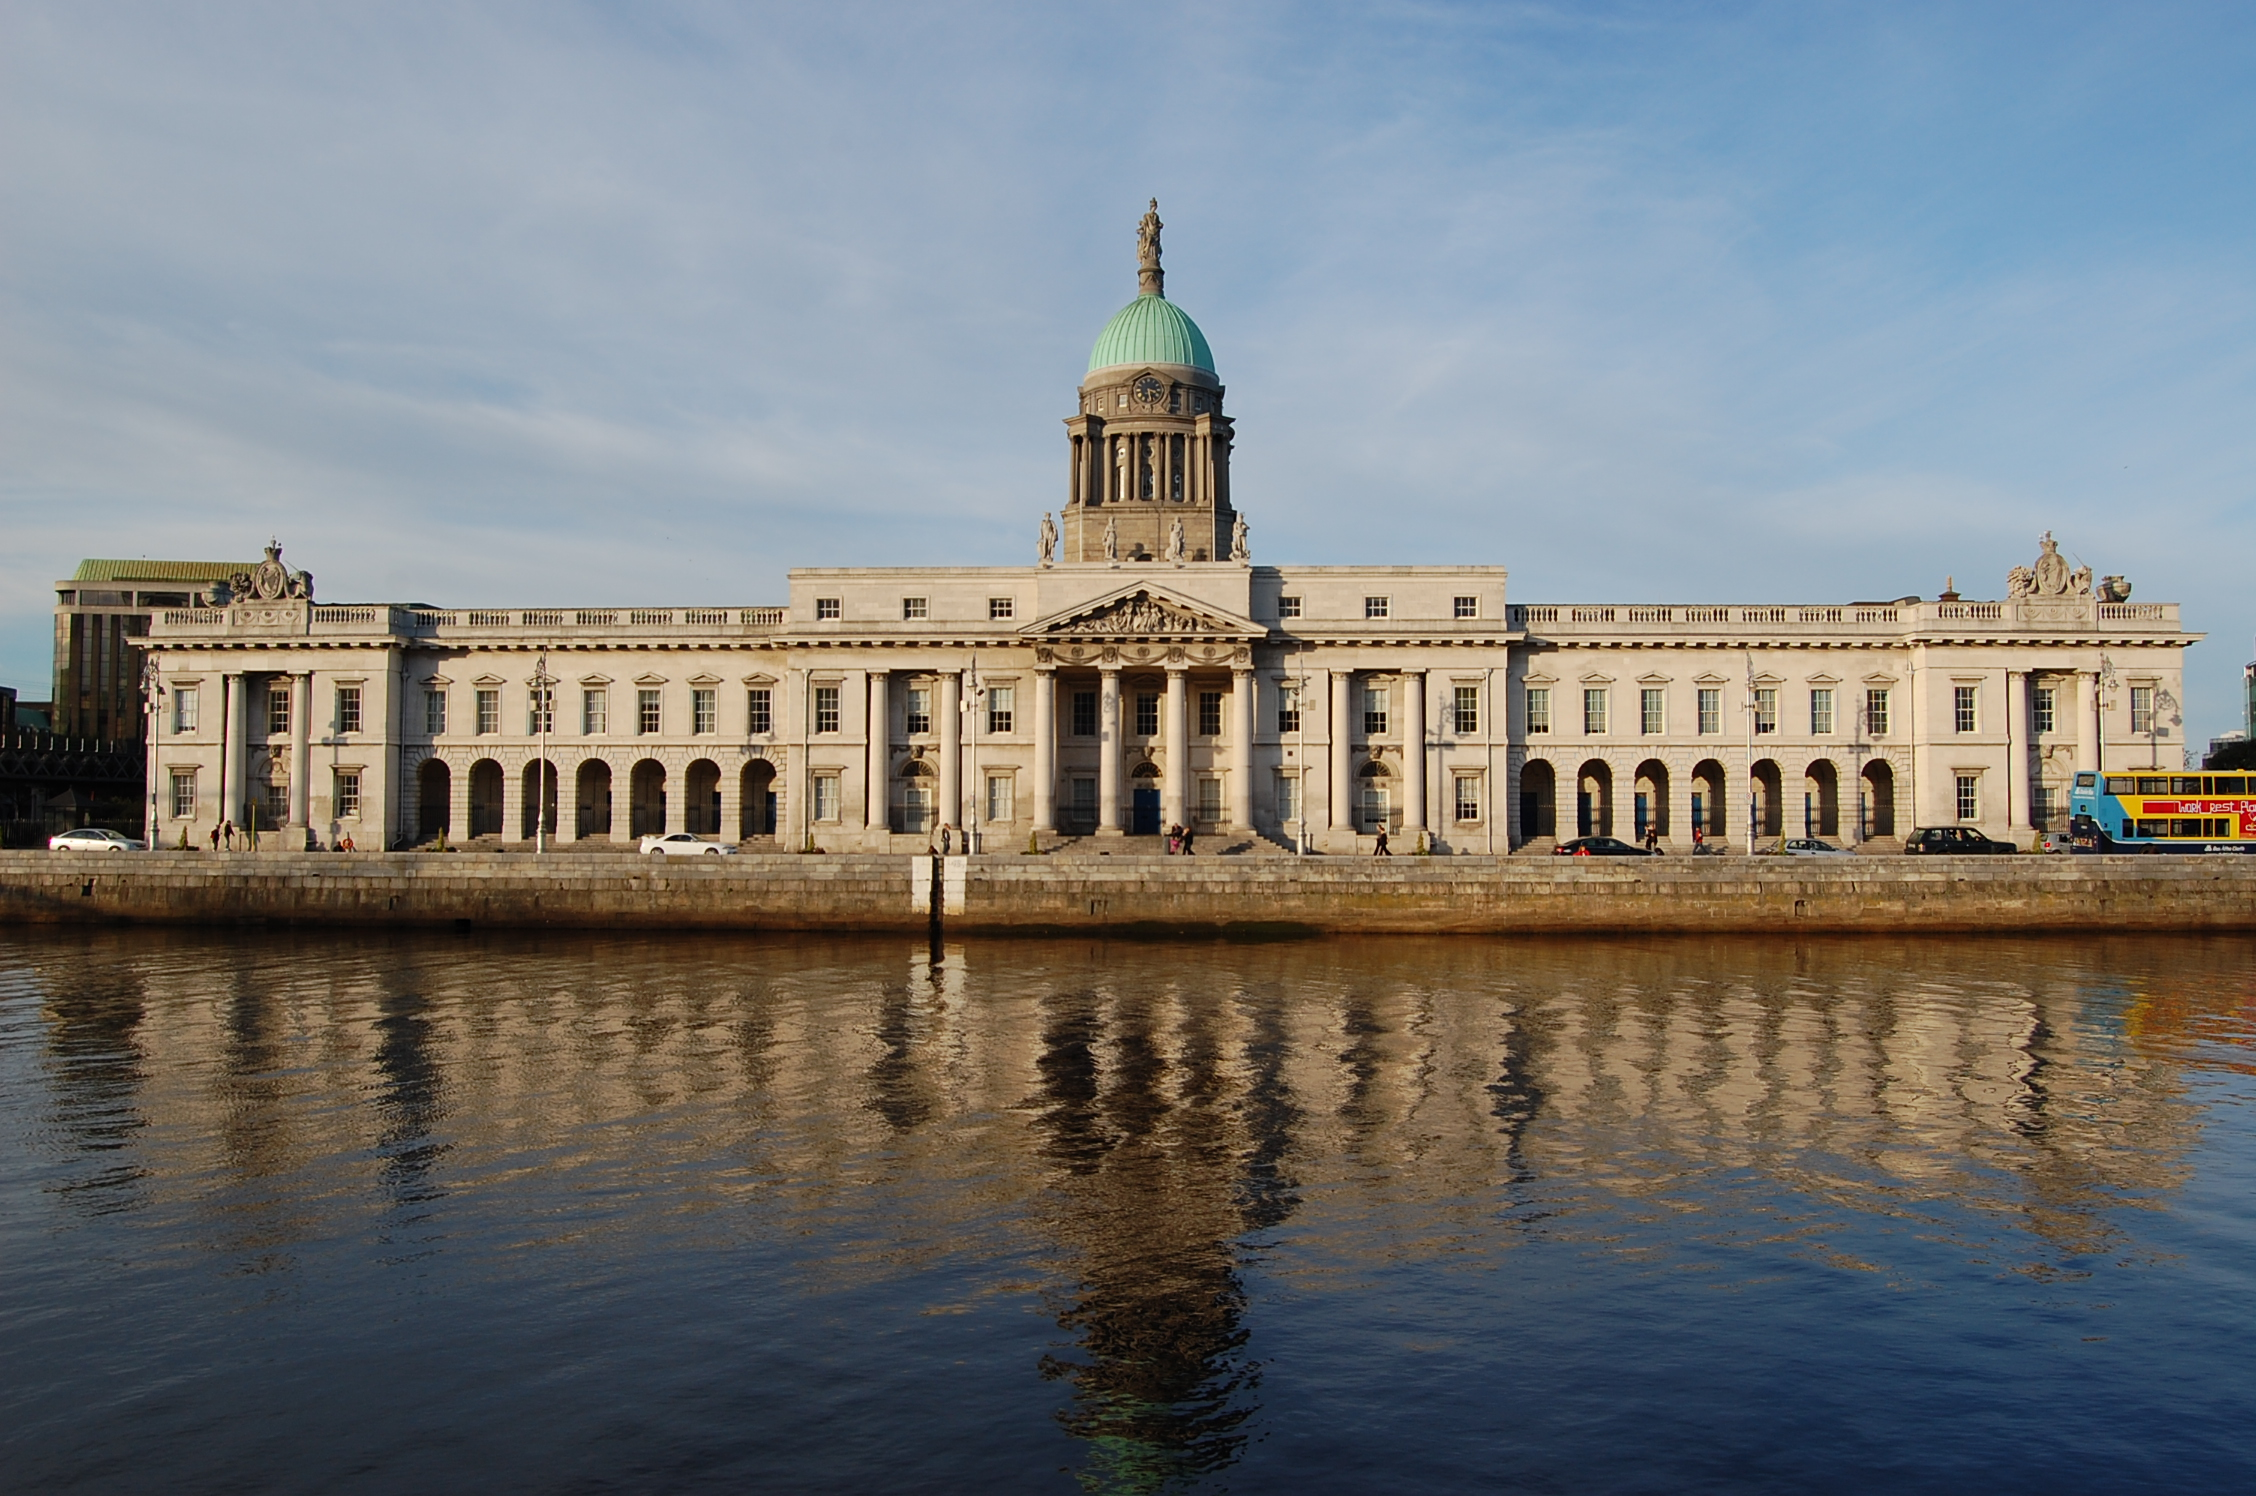 FileCustom House Dublin 01JPG Wikimedia Commons